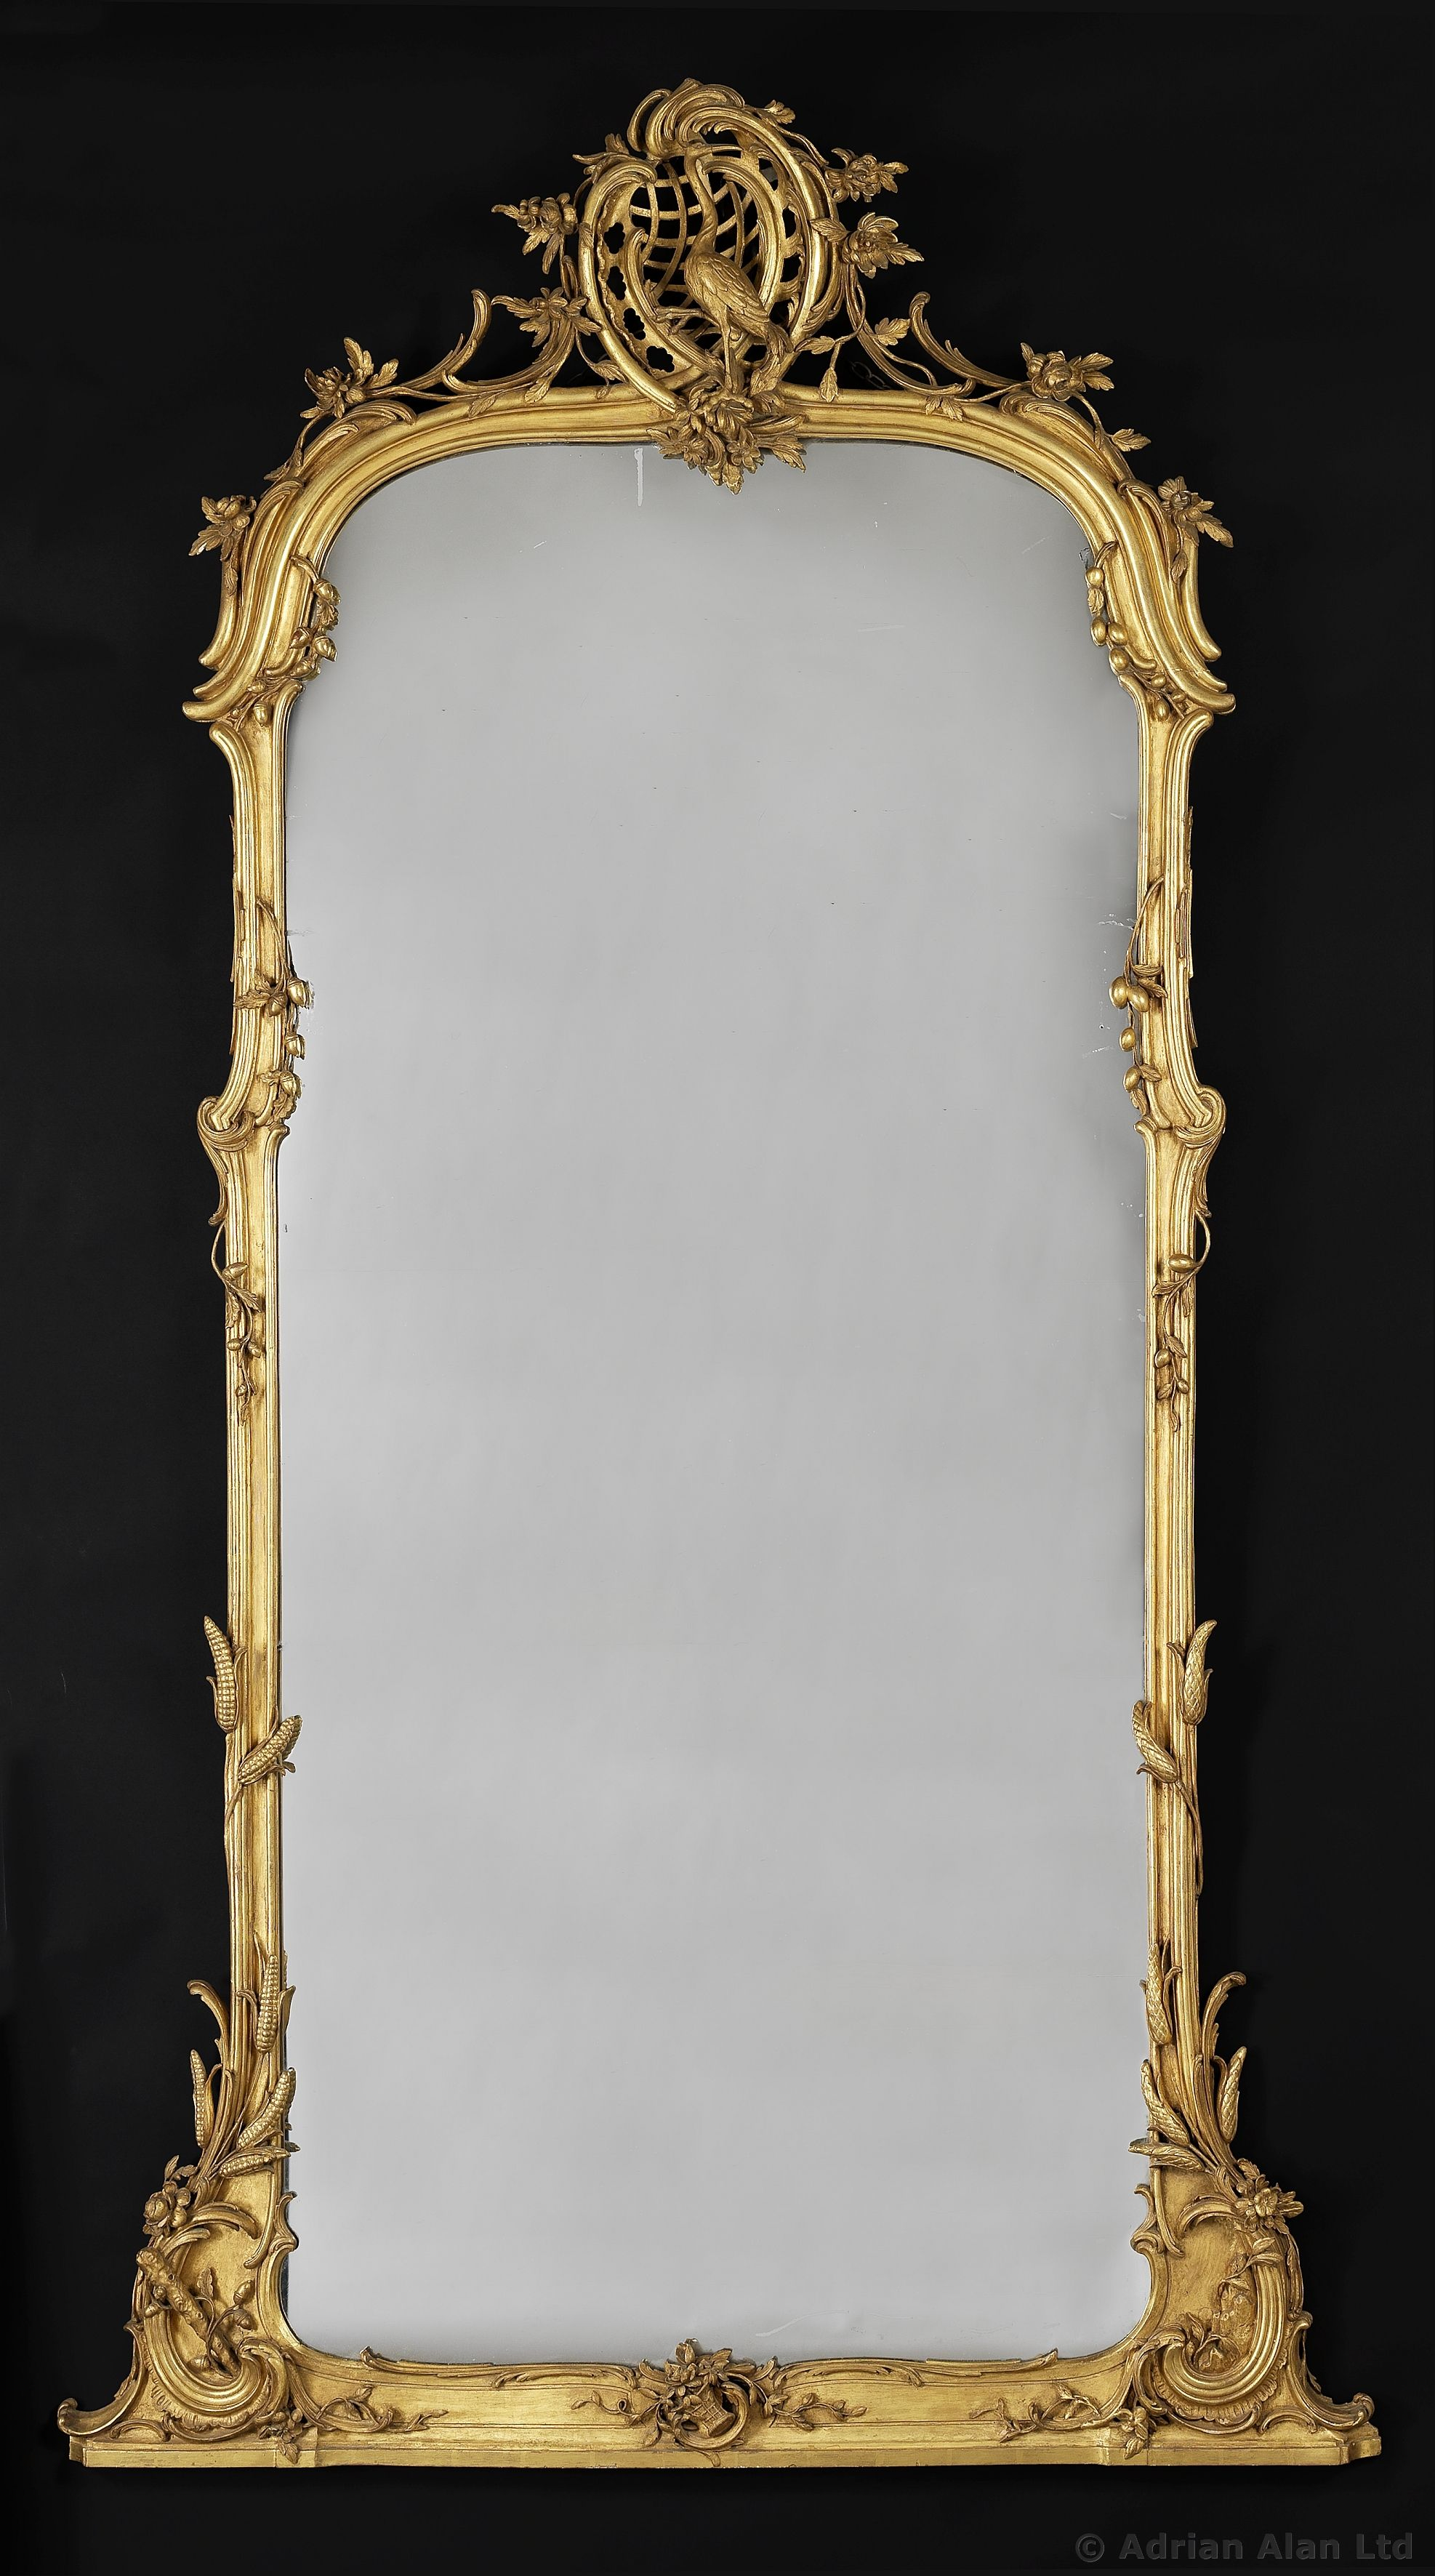 A very fine carved giltwood mirror german circa 1860 a very fine carved giltwood mirror german circa 1860 adrianalan amipublicfo Images